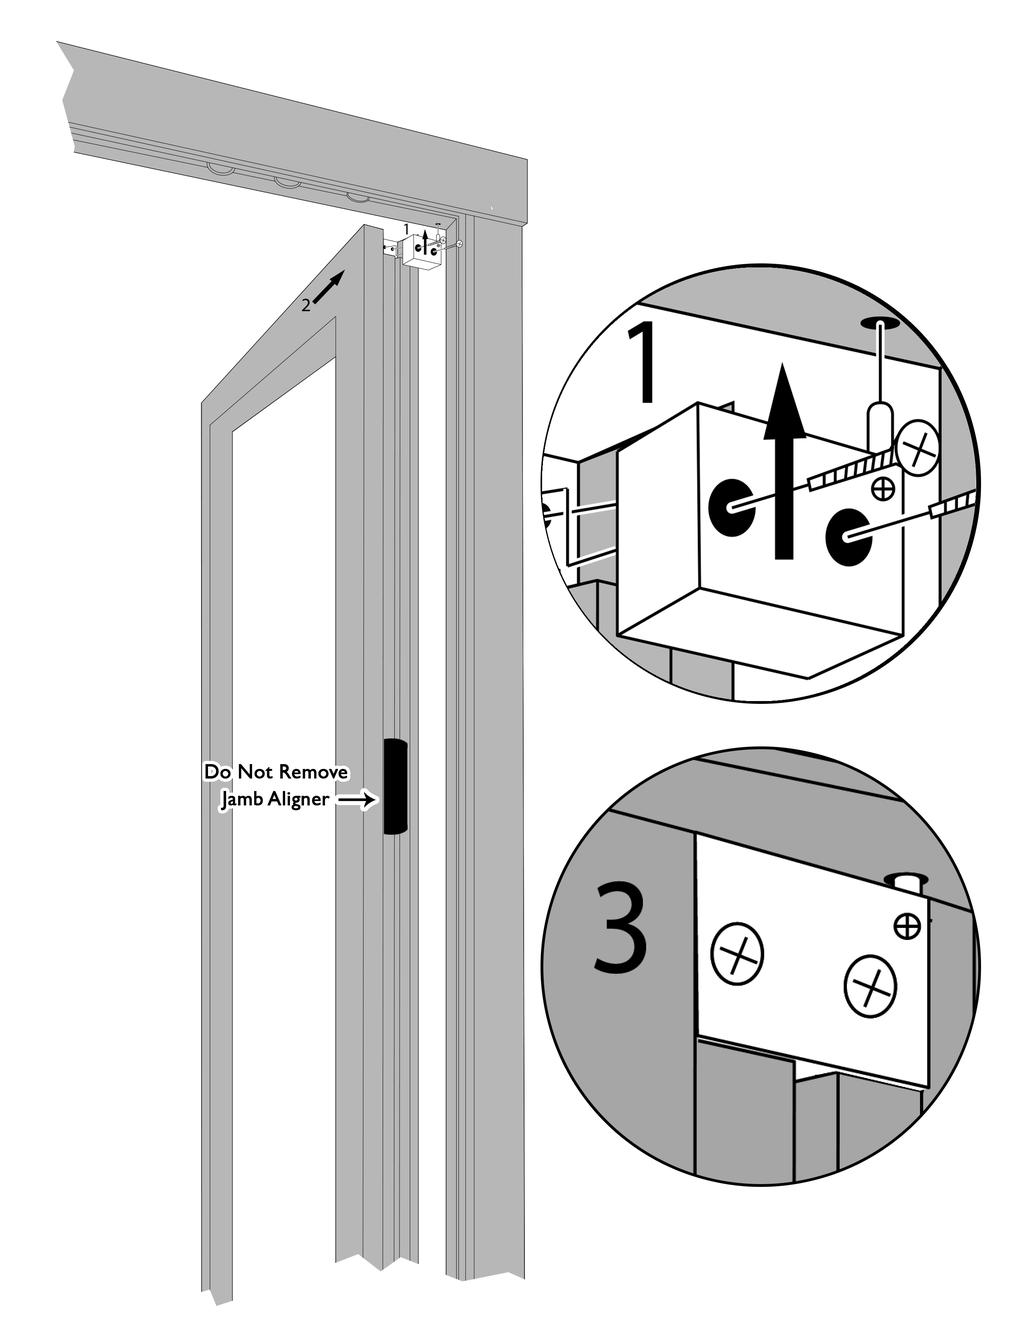 Installing the Swing Panel(s) 11 1. Remove hinge block from top of swing panel and slide hinge pin into pivot hole in the top track. 2.